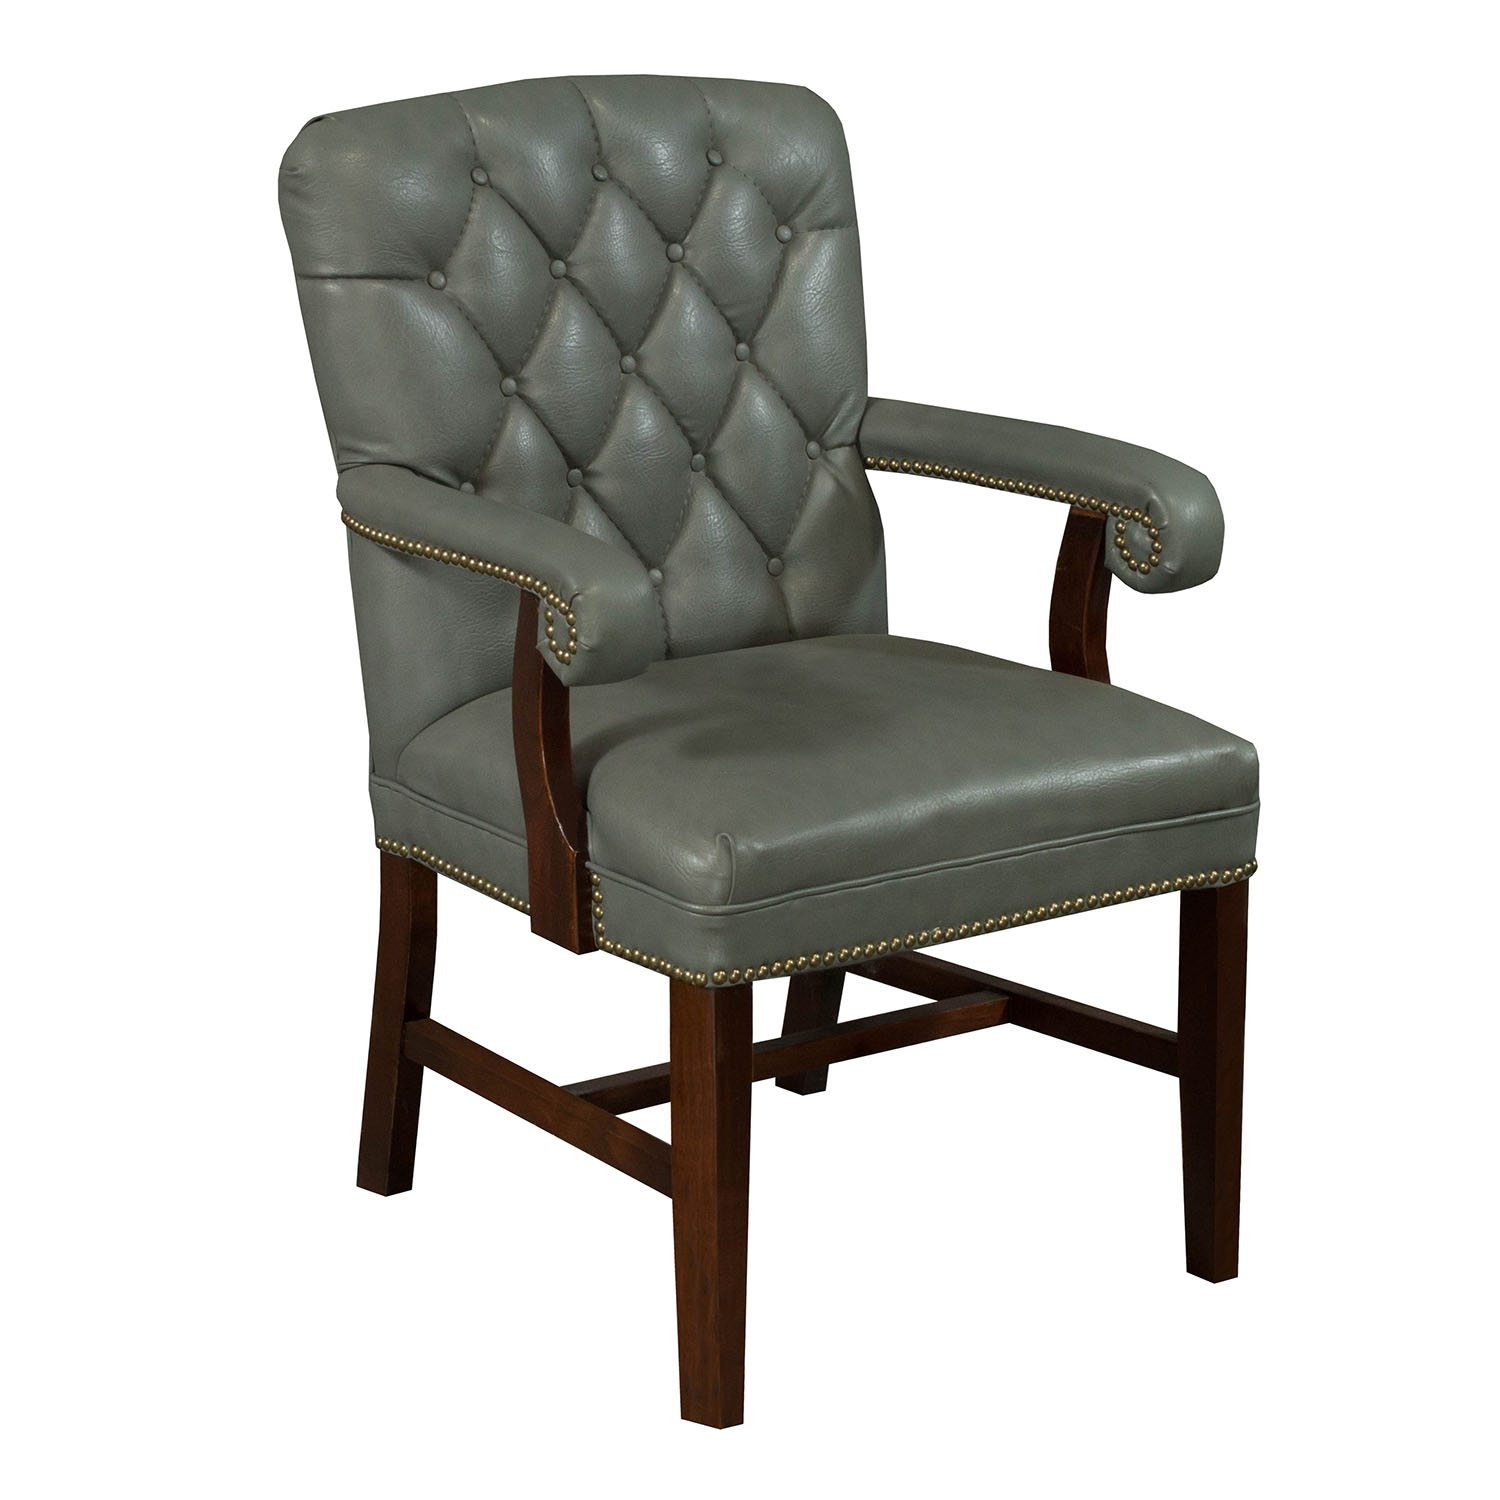 Tufted Leather Office Chair Planto Used Wood Tufted Leather Conference Chair Blue Gray